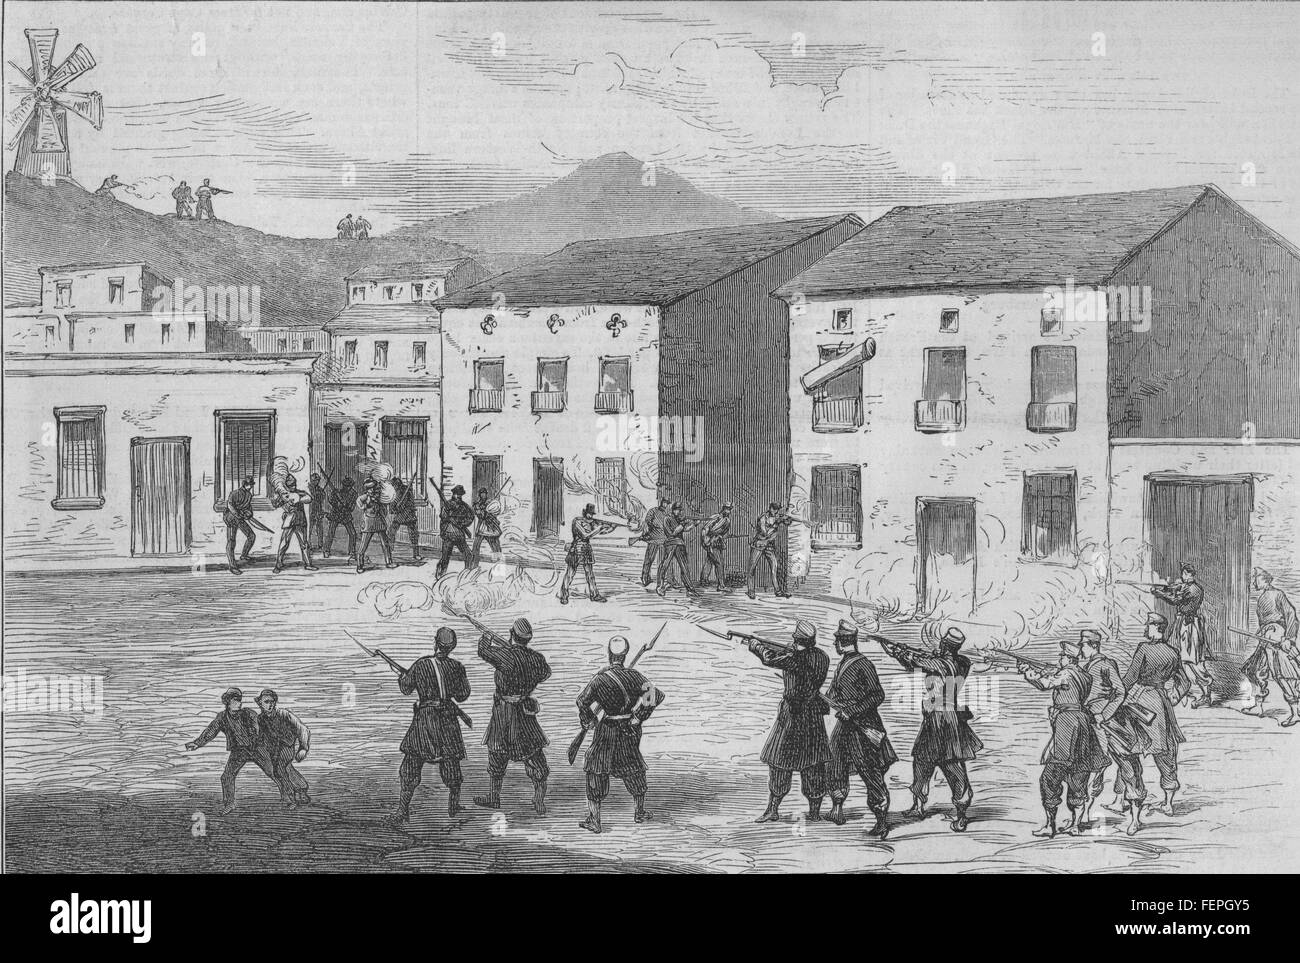 SPAIN Carabiniers resisting the Cartagena insurgents at Aguilas 1873. Illustrated London News Stock Photo